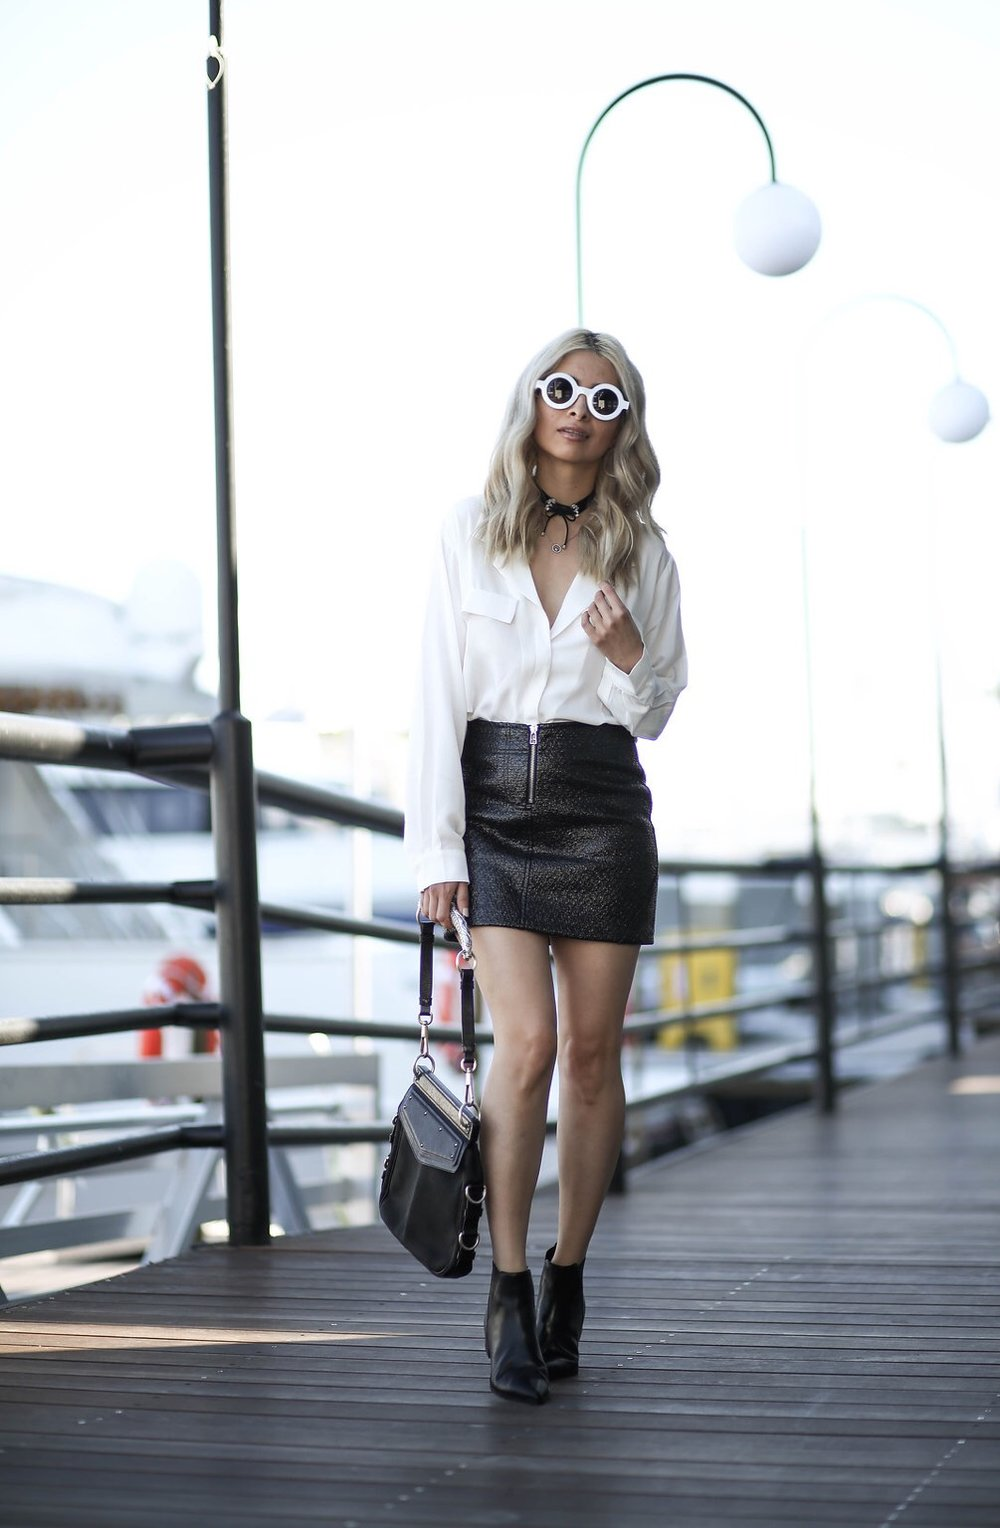 monochrome outfit_savvy javvy_la fashion blogger_blonde blogger_mod style_best fashion blogger_best la fashion bloggers_pointed toe ankle booties_& other stories_petite studio nyc top_leather skirt_zara skirt_white sunglasses